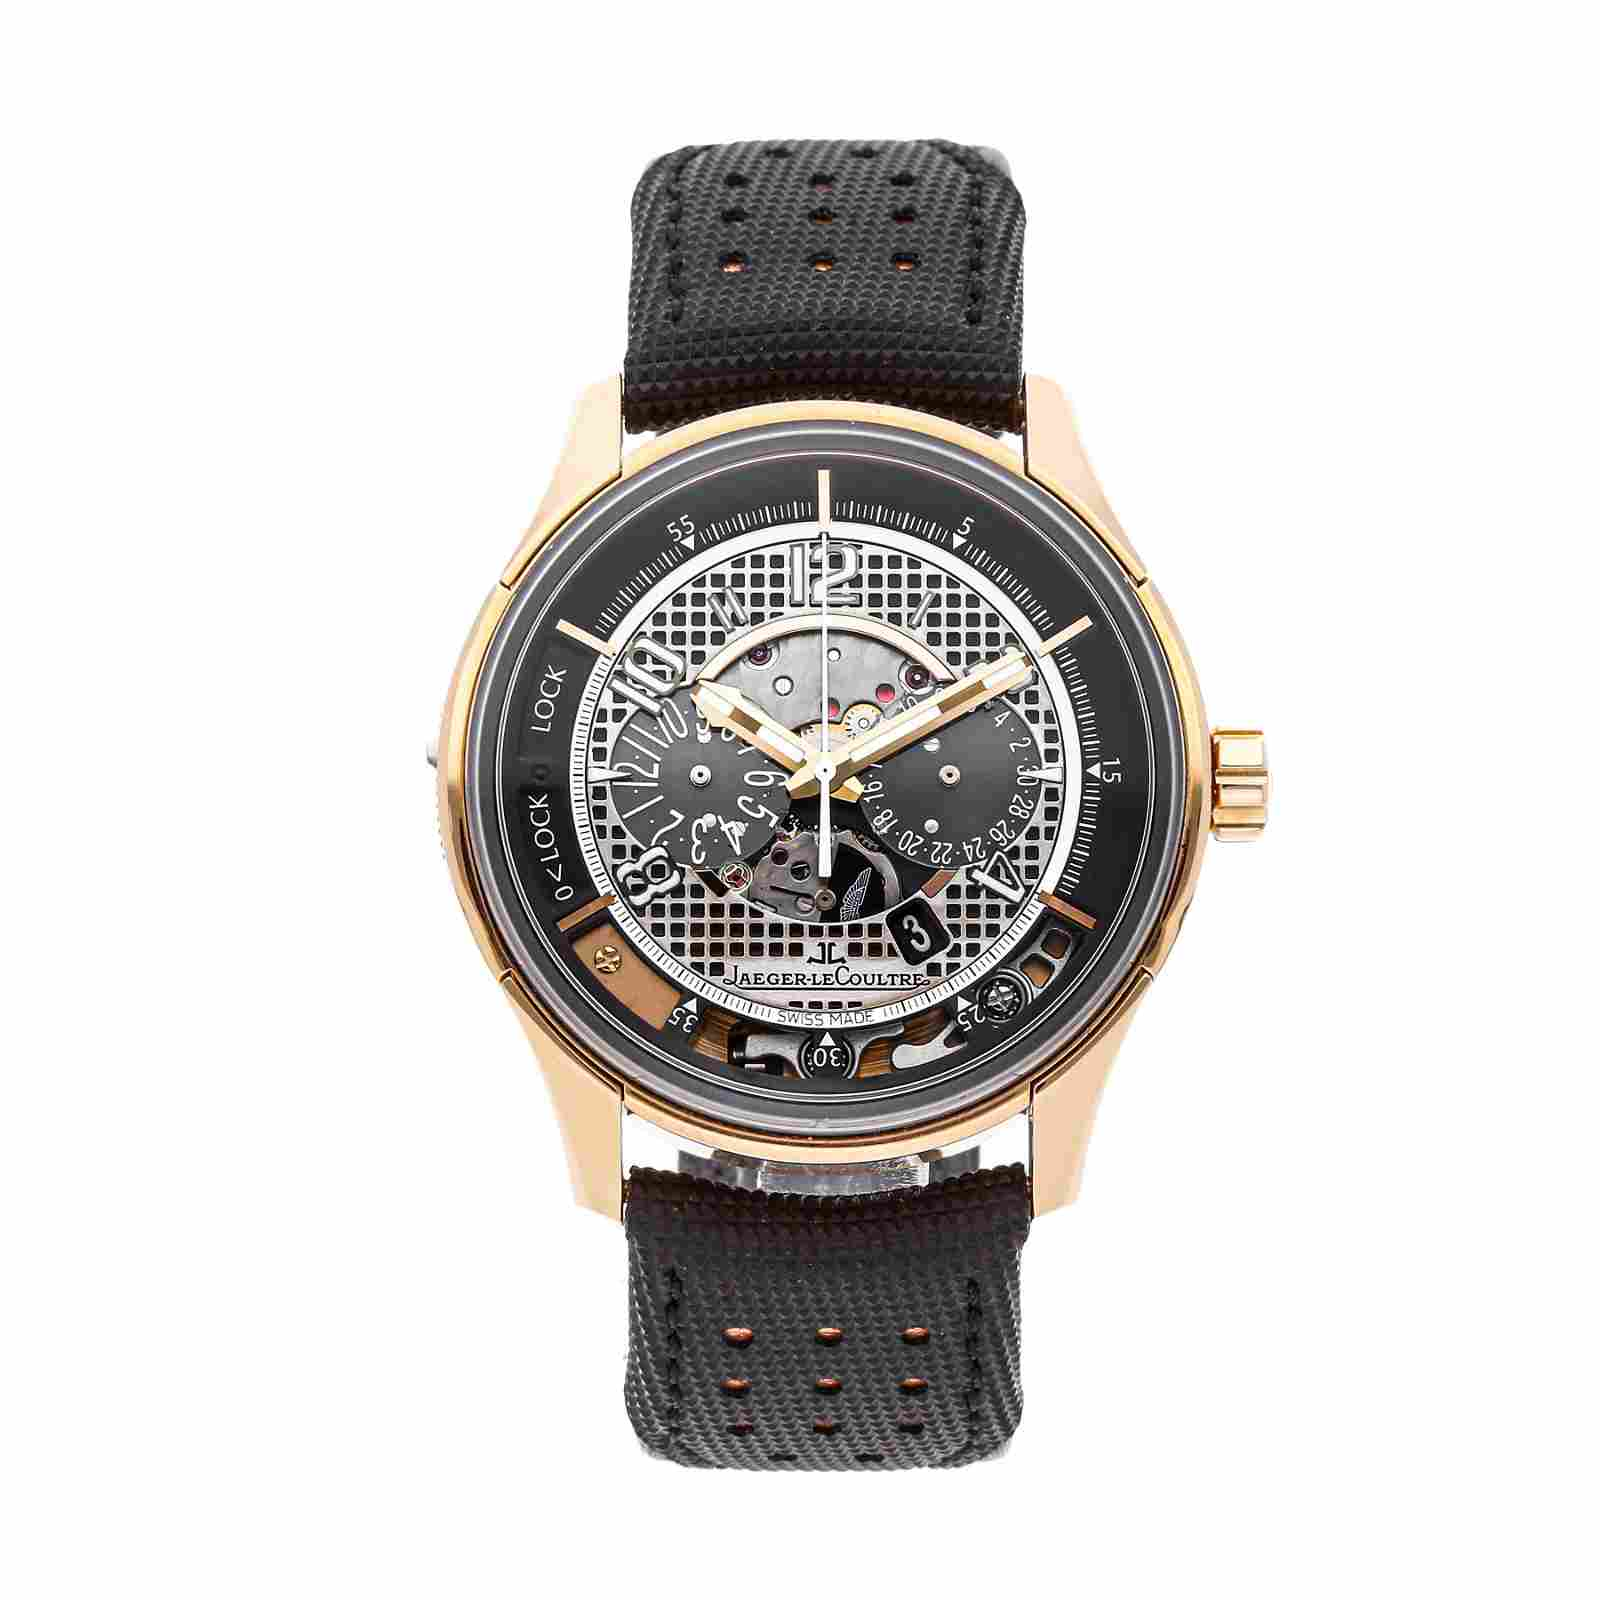 Jaeger-LeCoultre Amvox 2 Grand Chronograph Limited